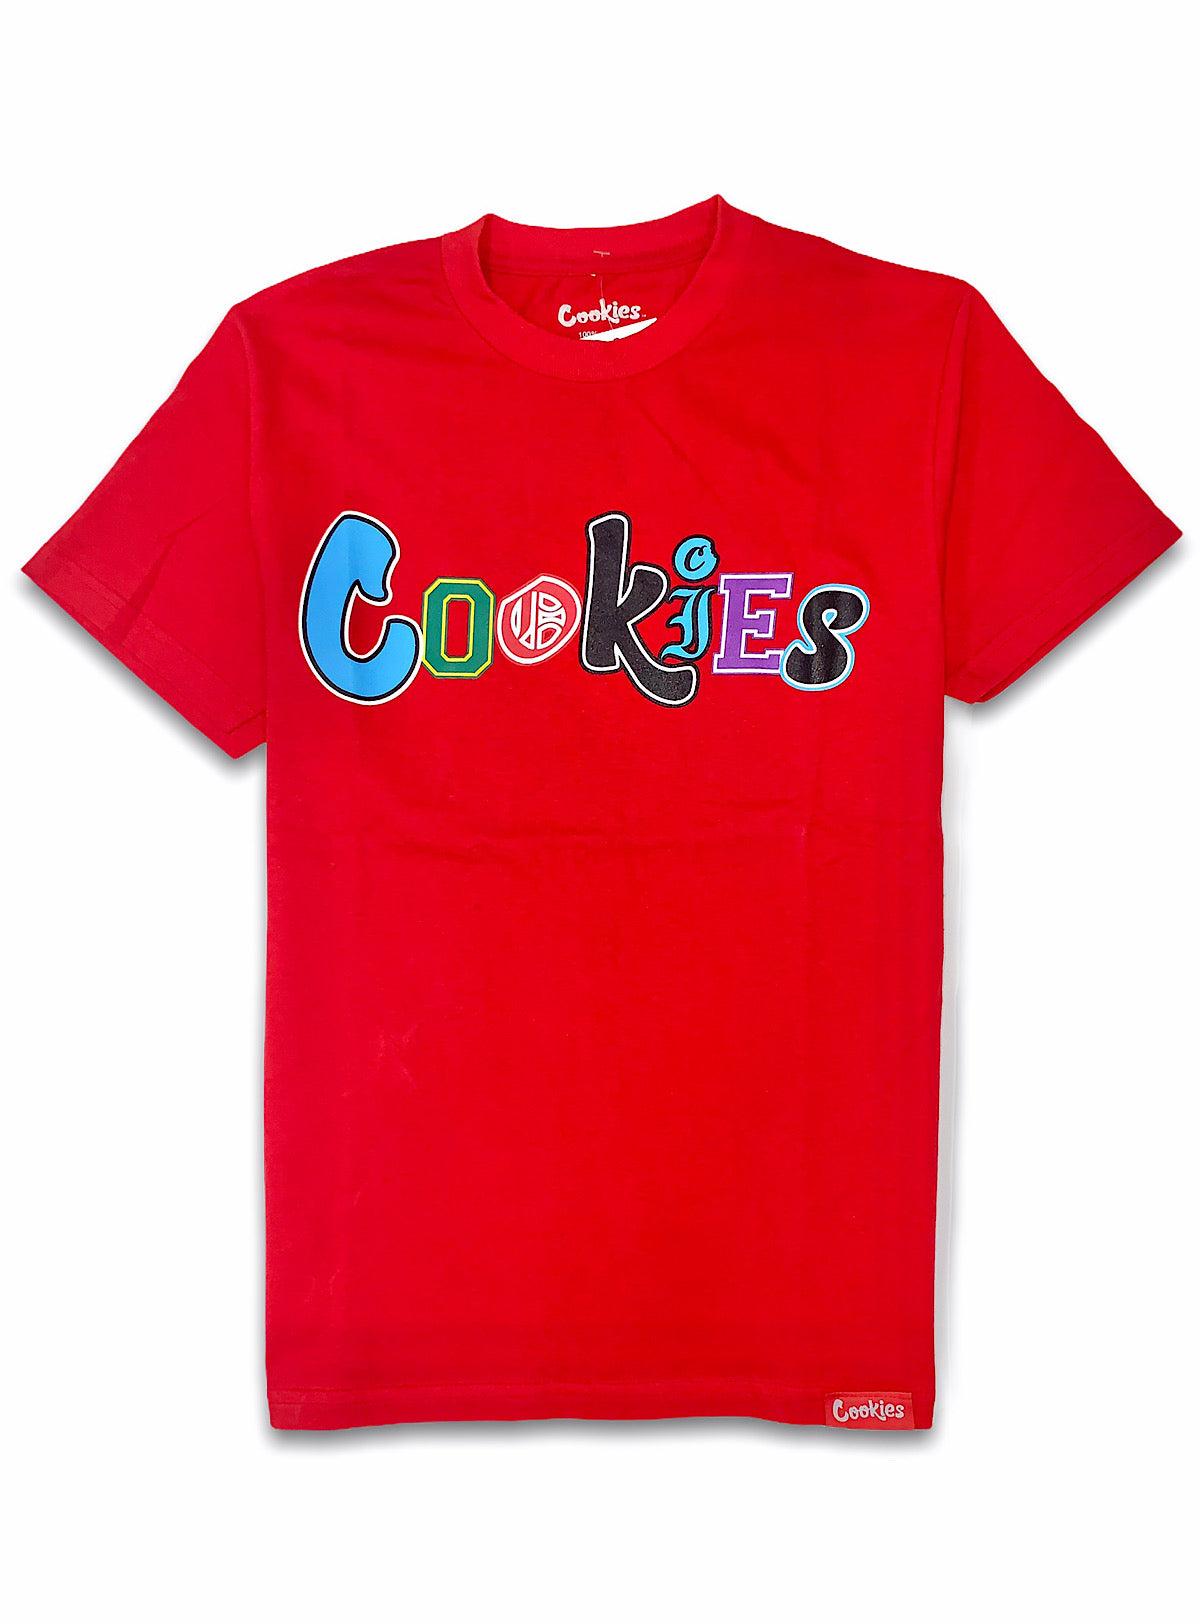 Cookies T-Shirt - City Limits Multi Logo - Red - 1545T4116